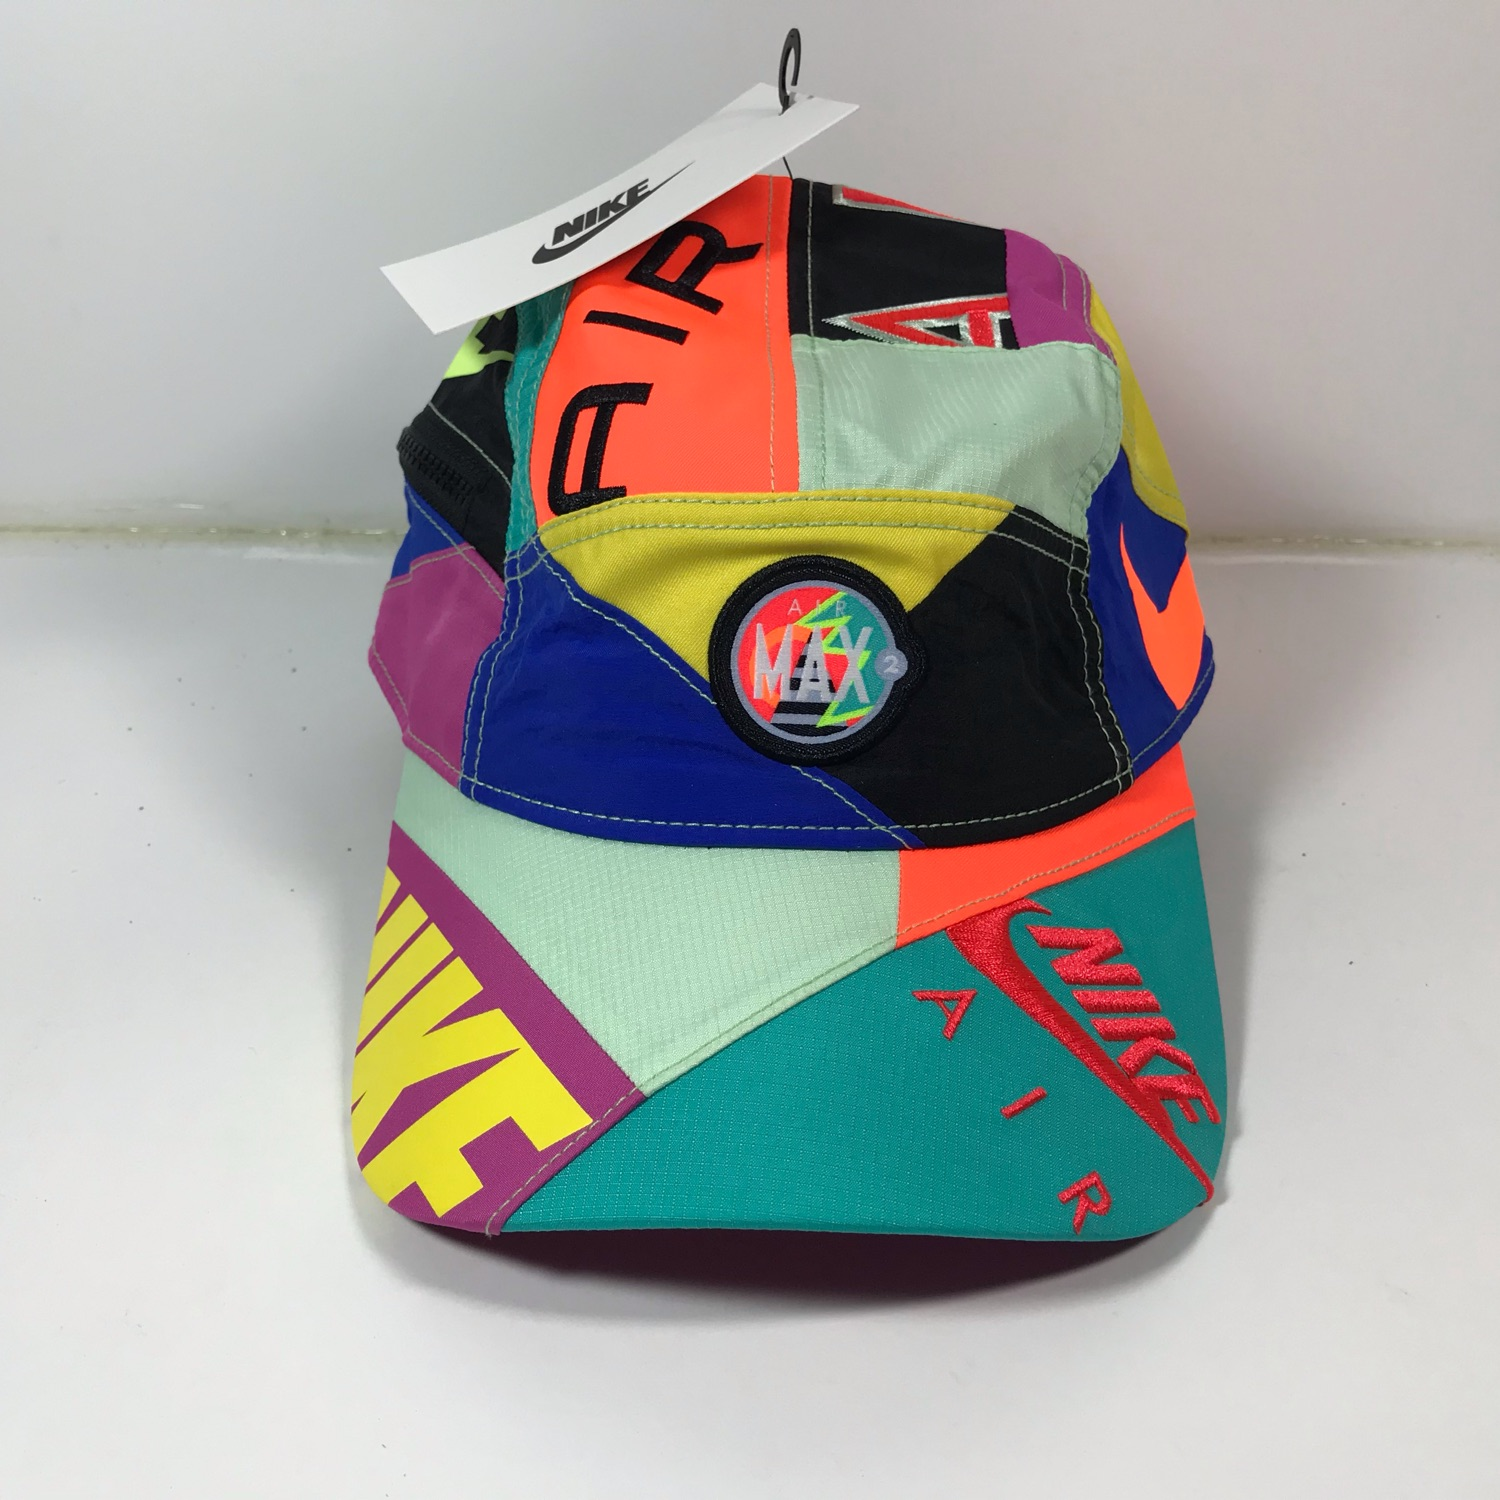 chiaro e distintivo accogliente fresco outlet in vendita where can i buy nrg hat 82a6f 0ee26